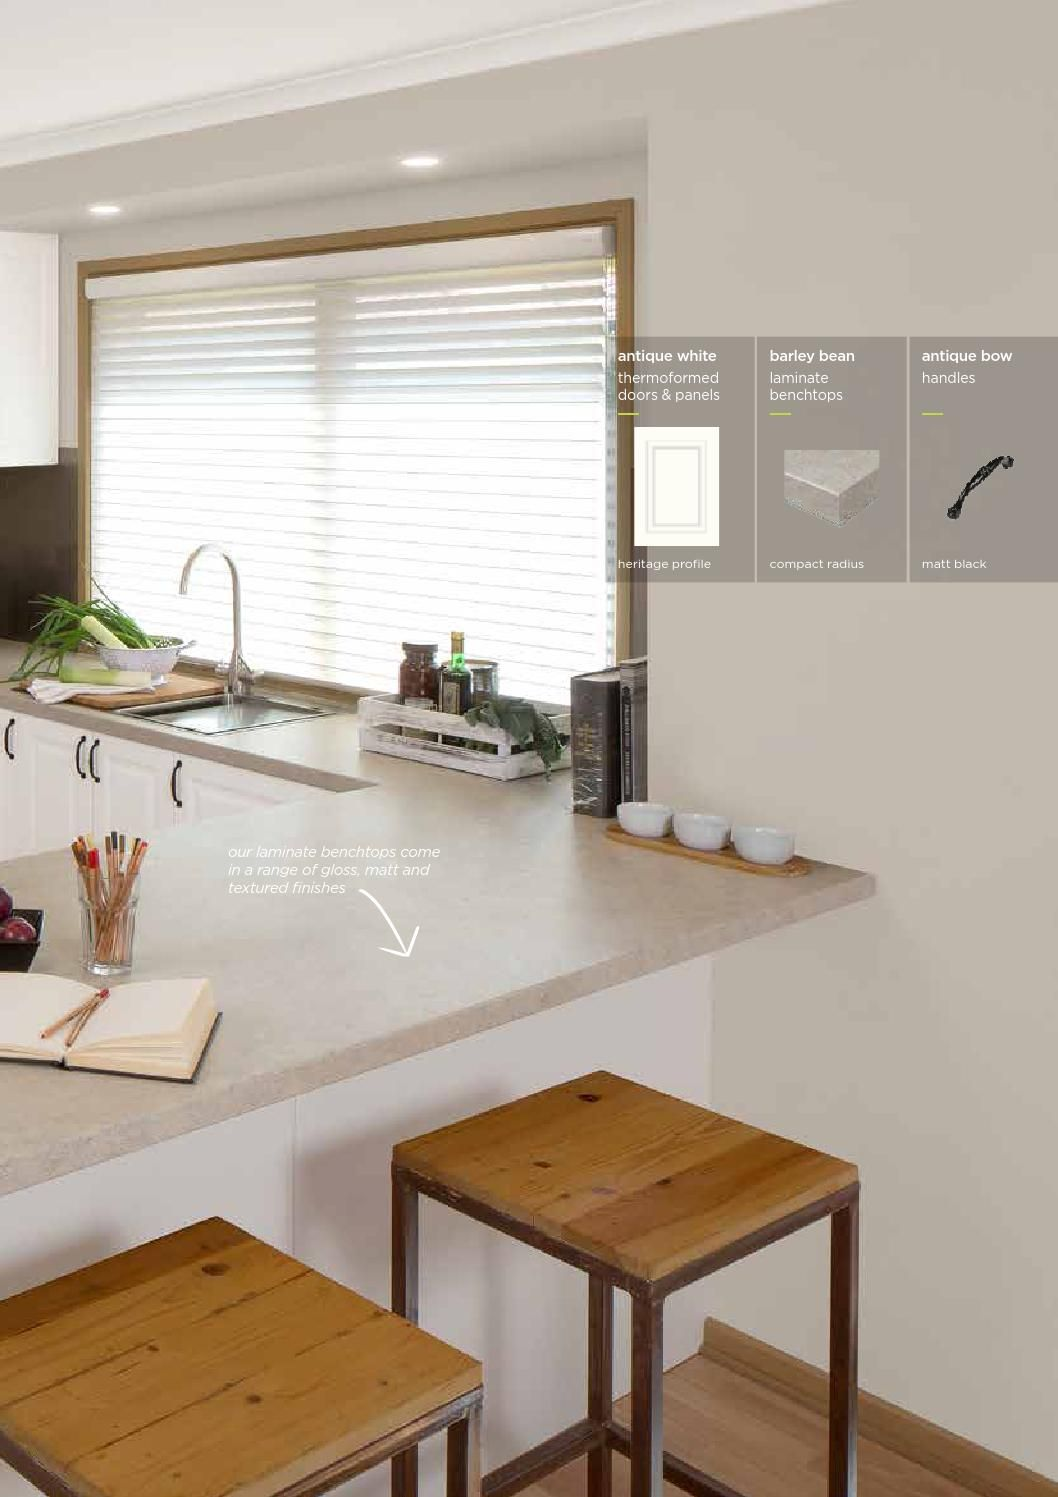 kaboodle kitchen australian catalogue in 2020 kitchen home decor household on kaboodle kitchen design id=49040